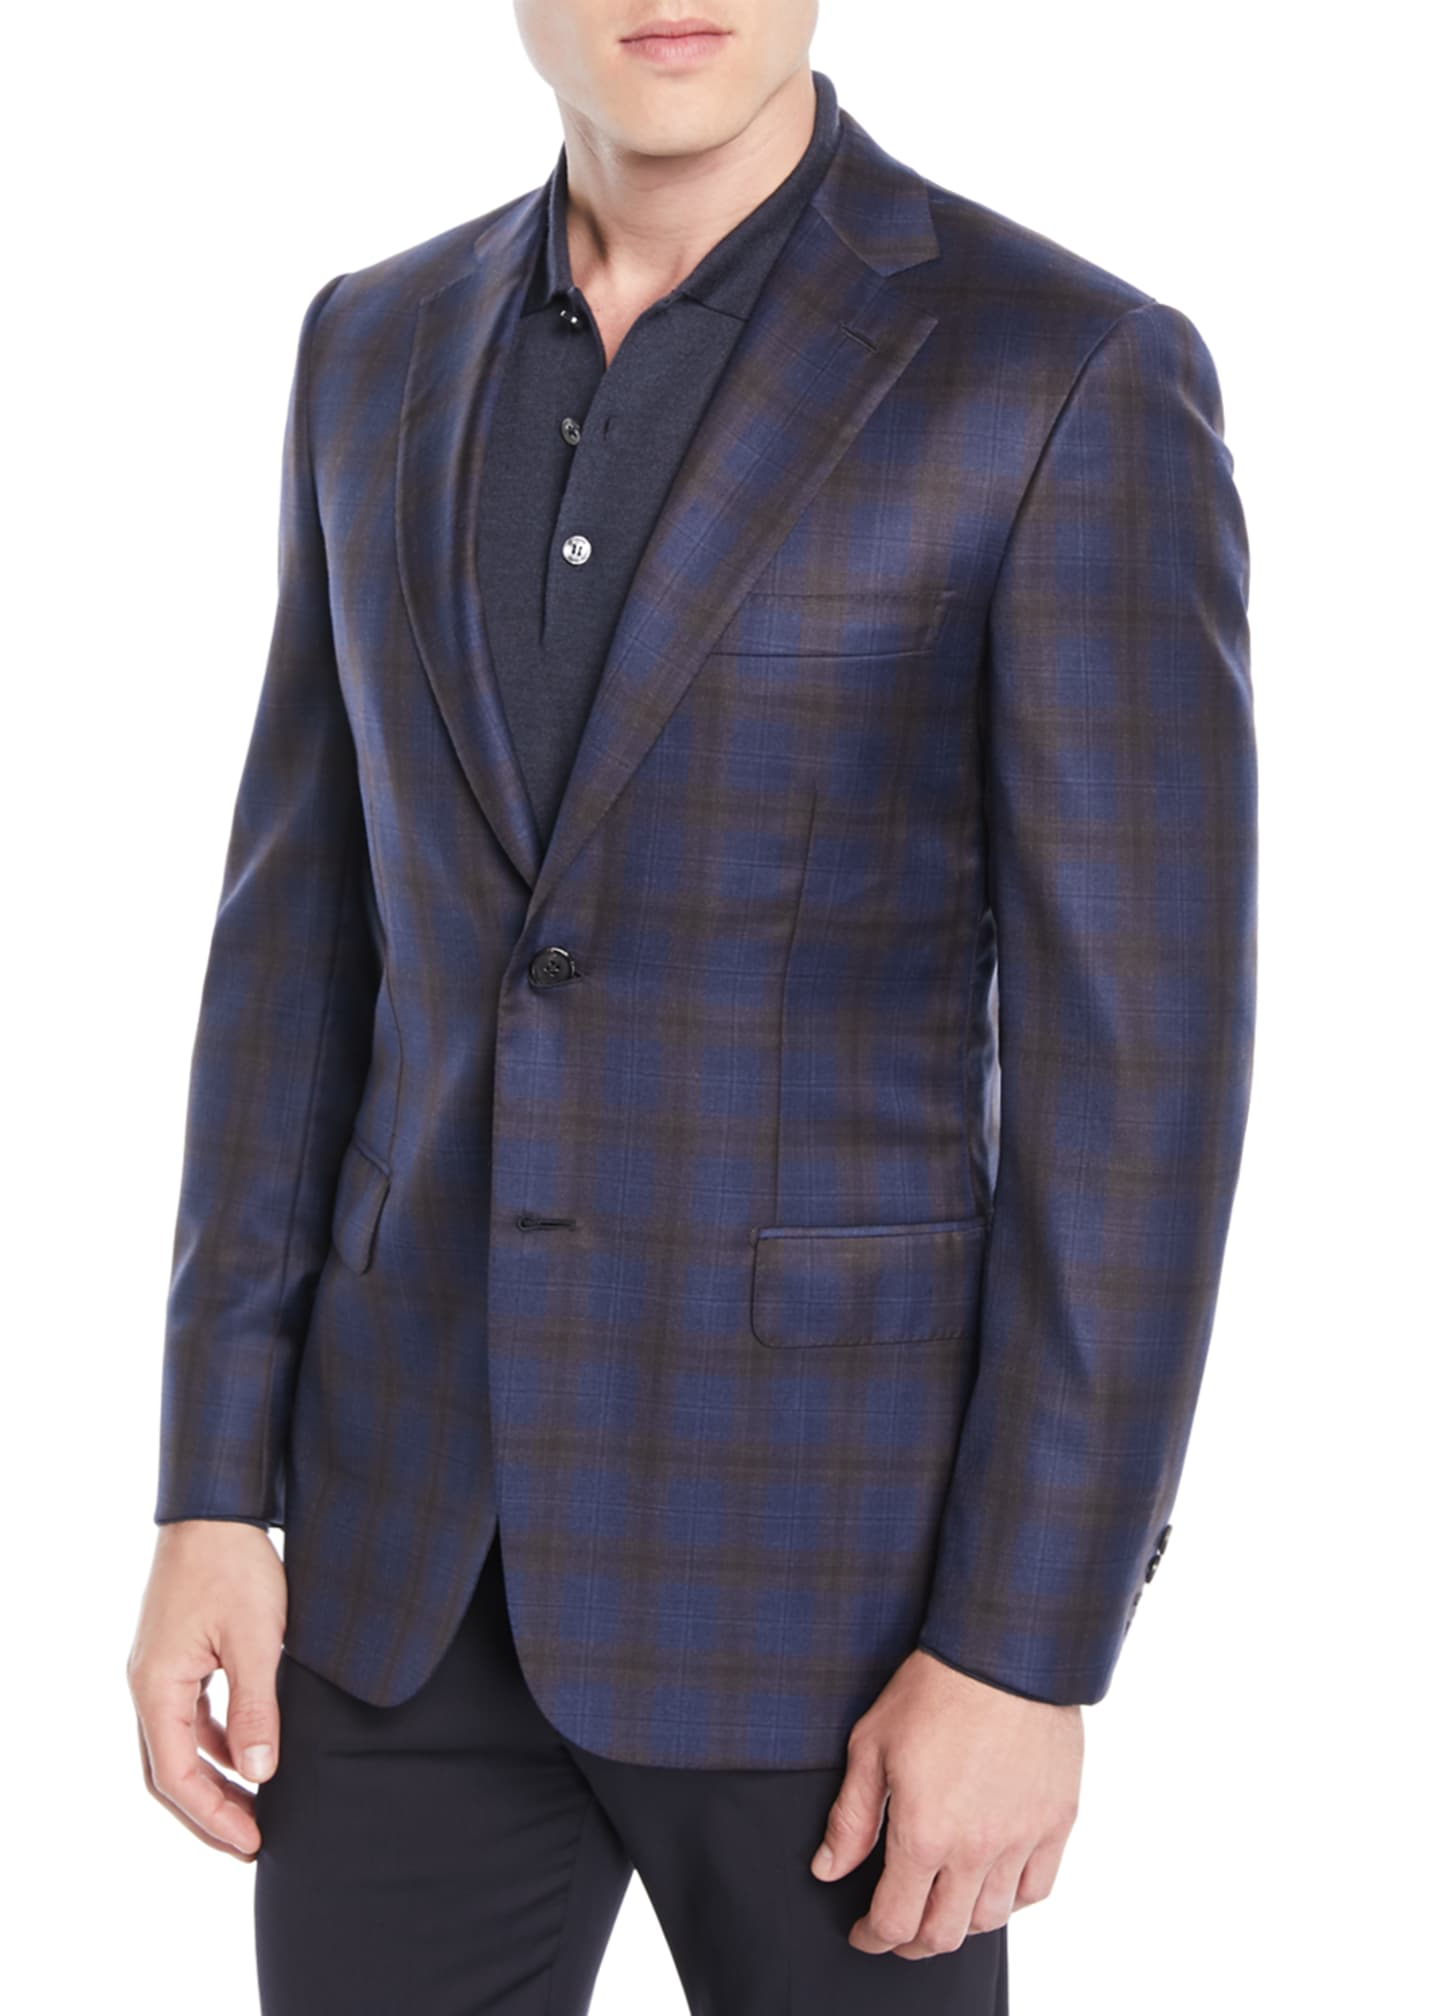 Brioni Men's Two-Tone Plaid Two-Button Jacket, Blue